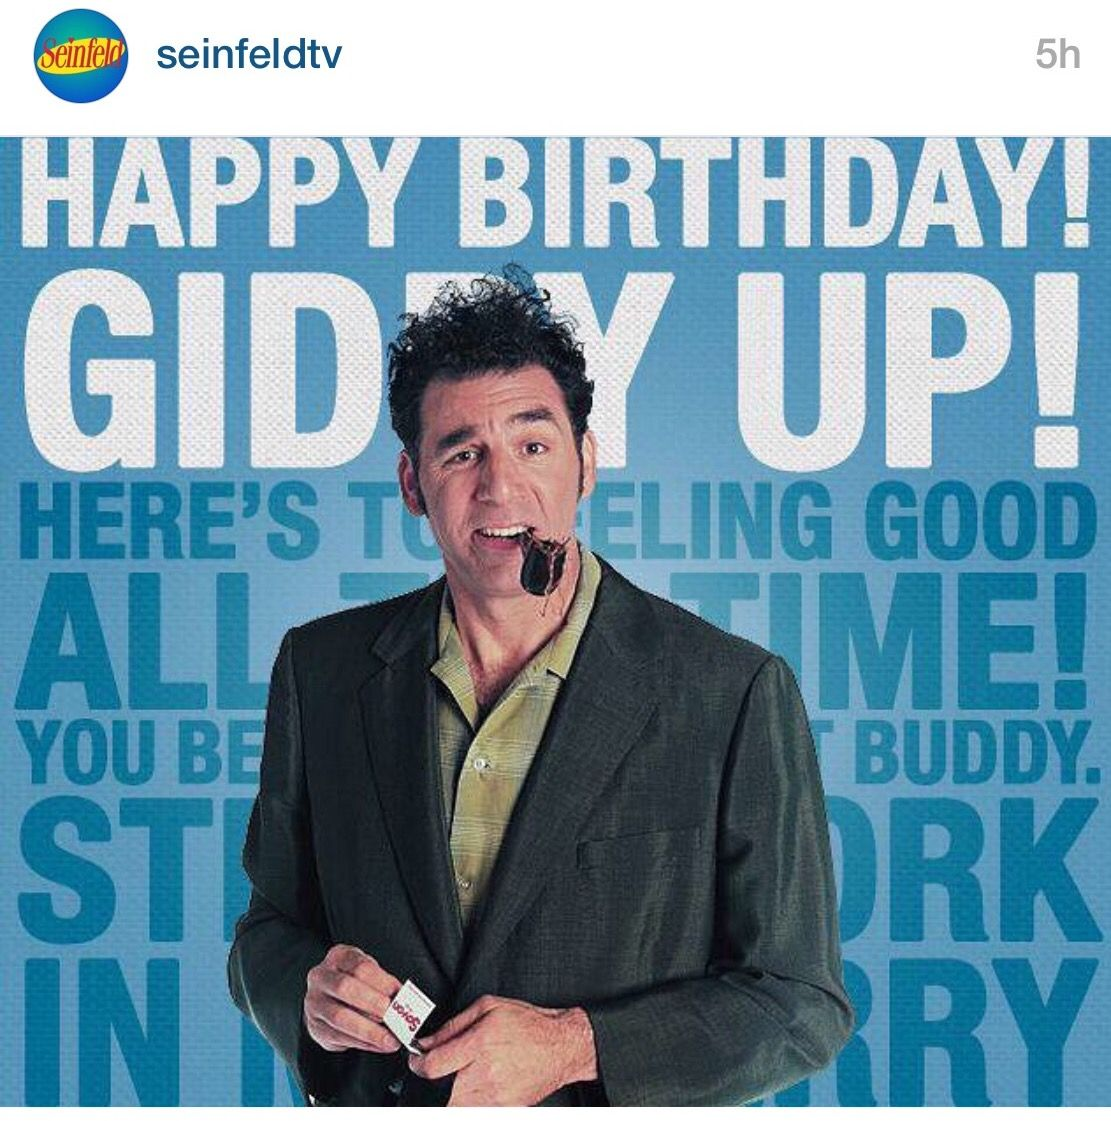 seinfeld happy birthday quote ; 808ebed71bbe4a4f3c0dbbfc37fefe4d